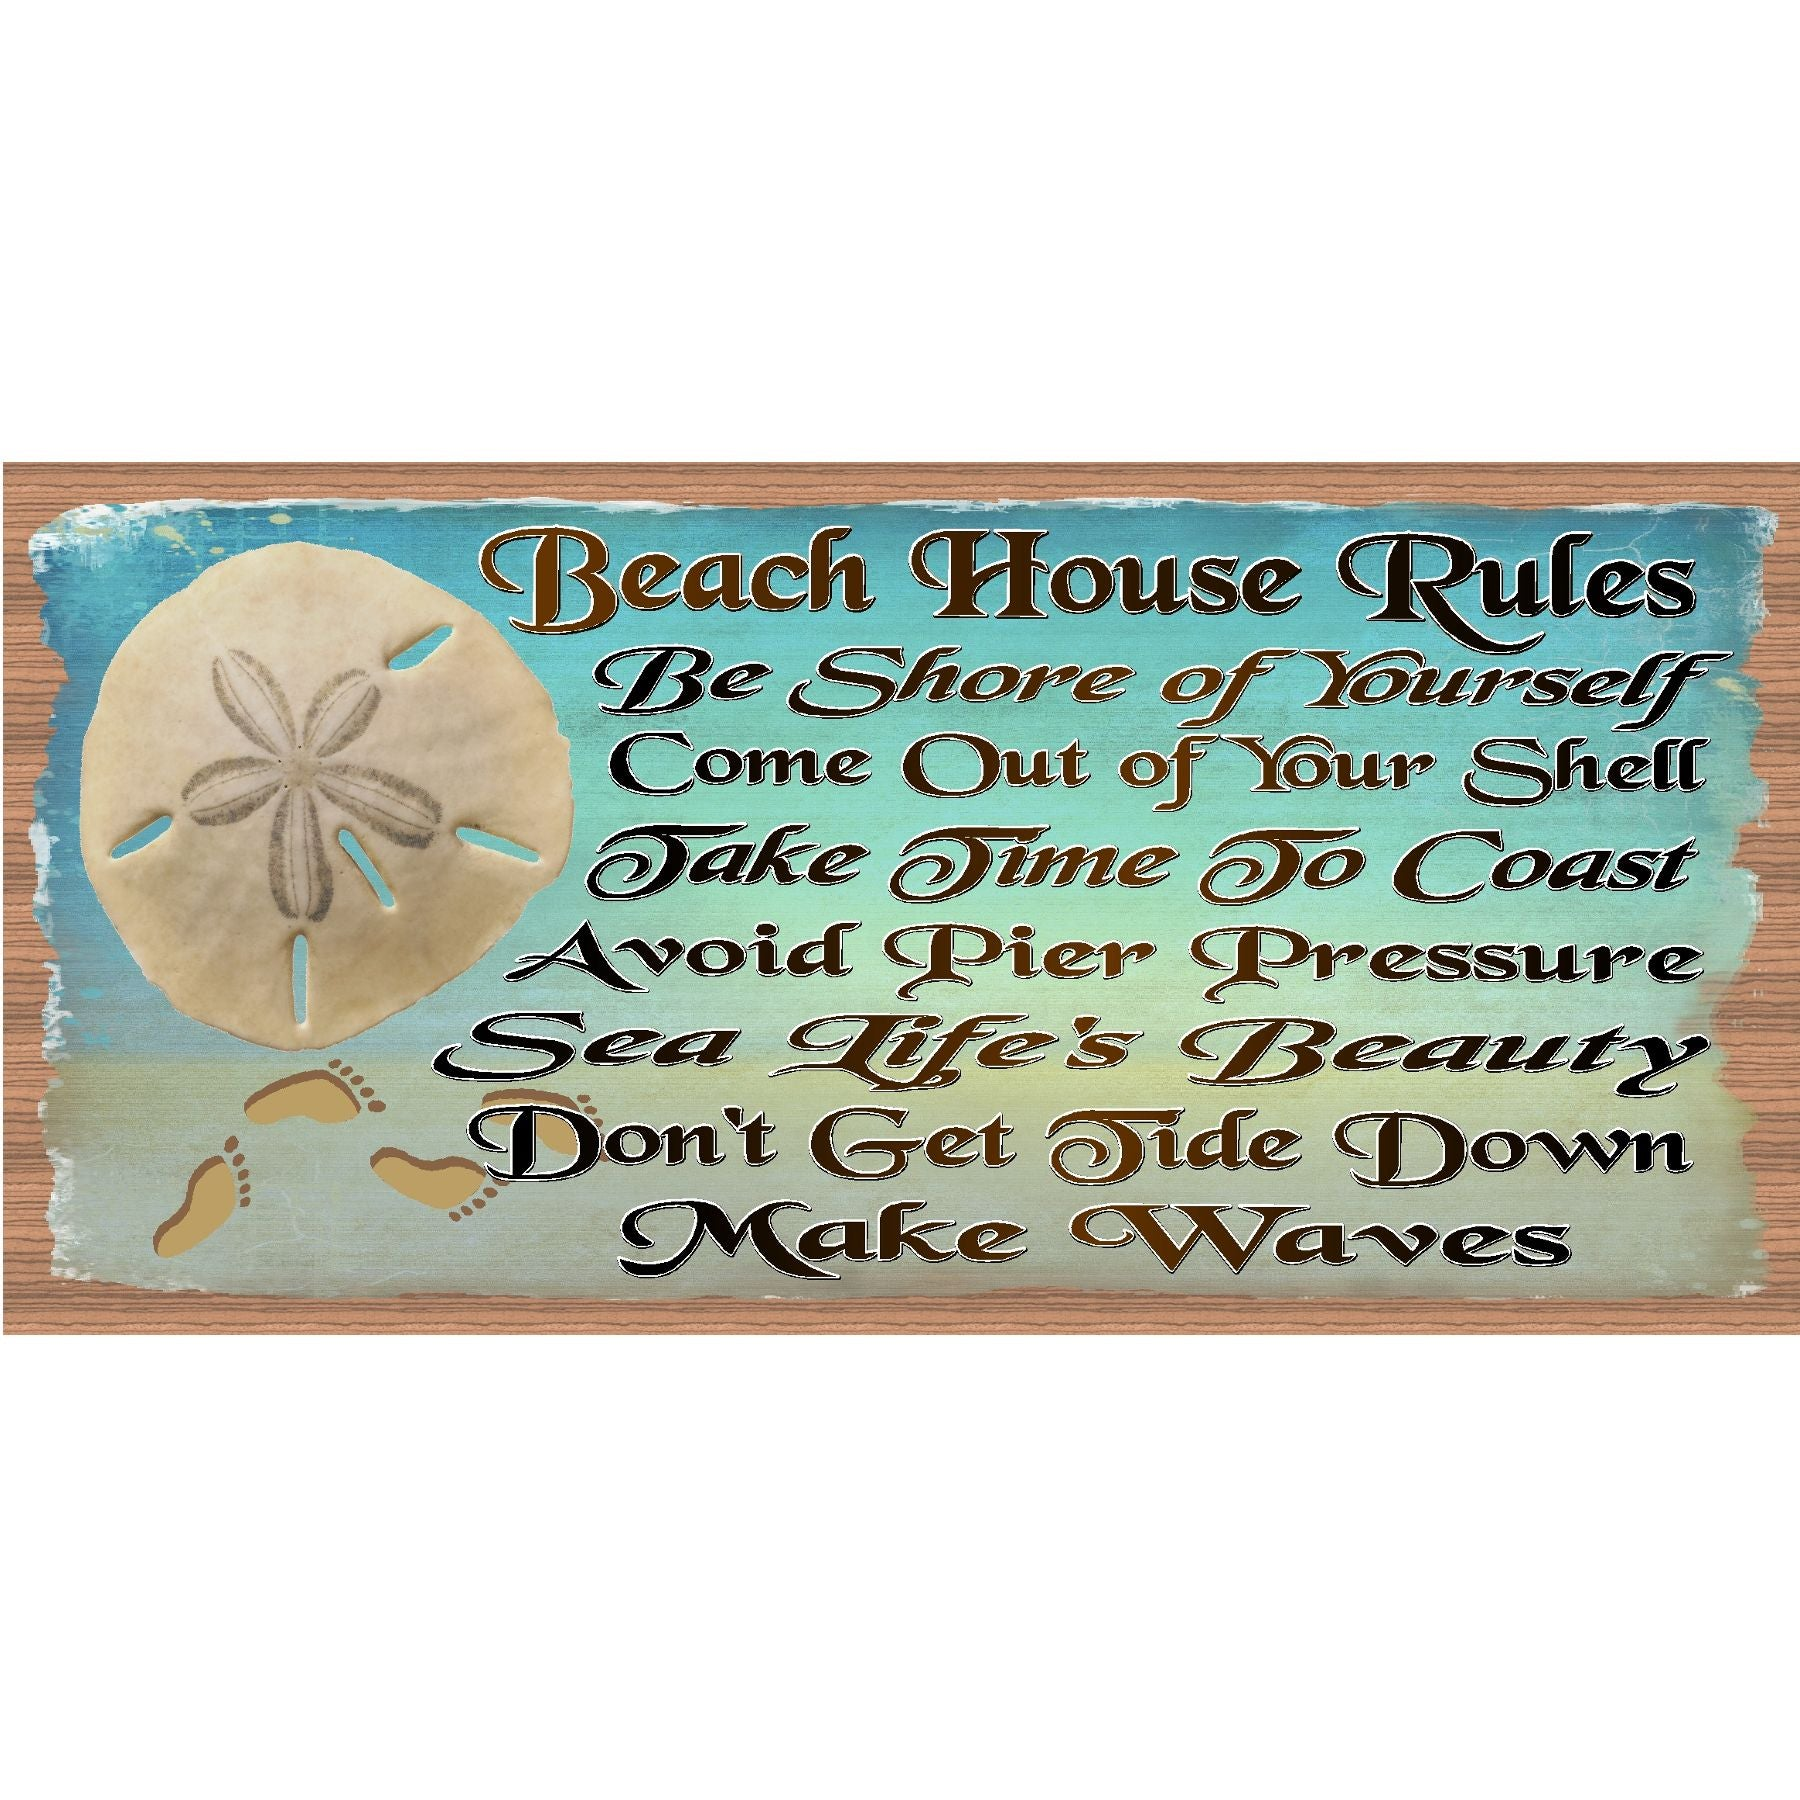 Beach Wood Signs -Beach House Rules- GS 1774- Beach Plaque